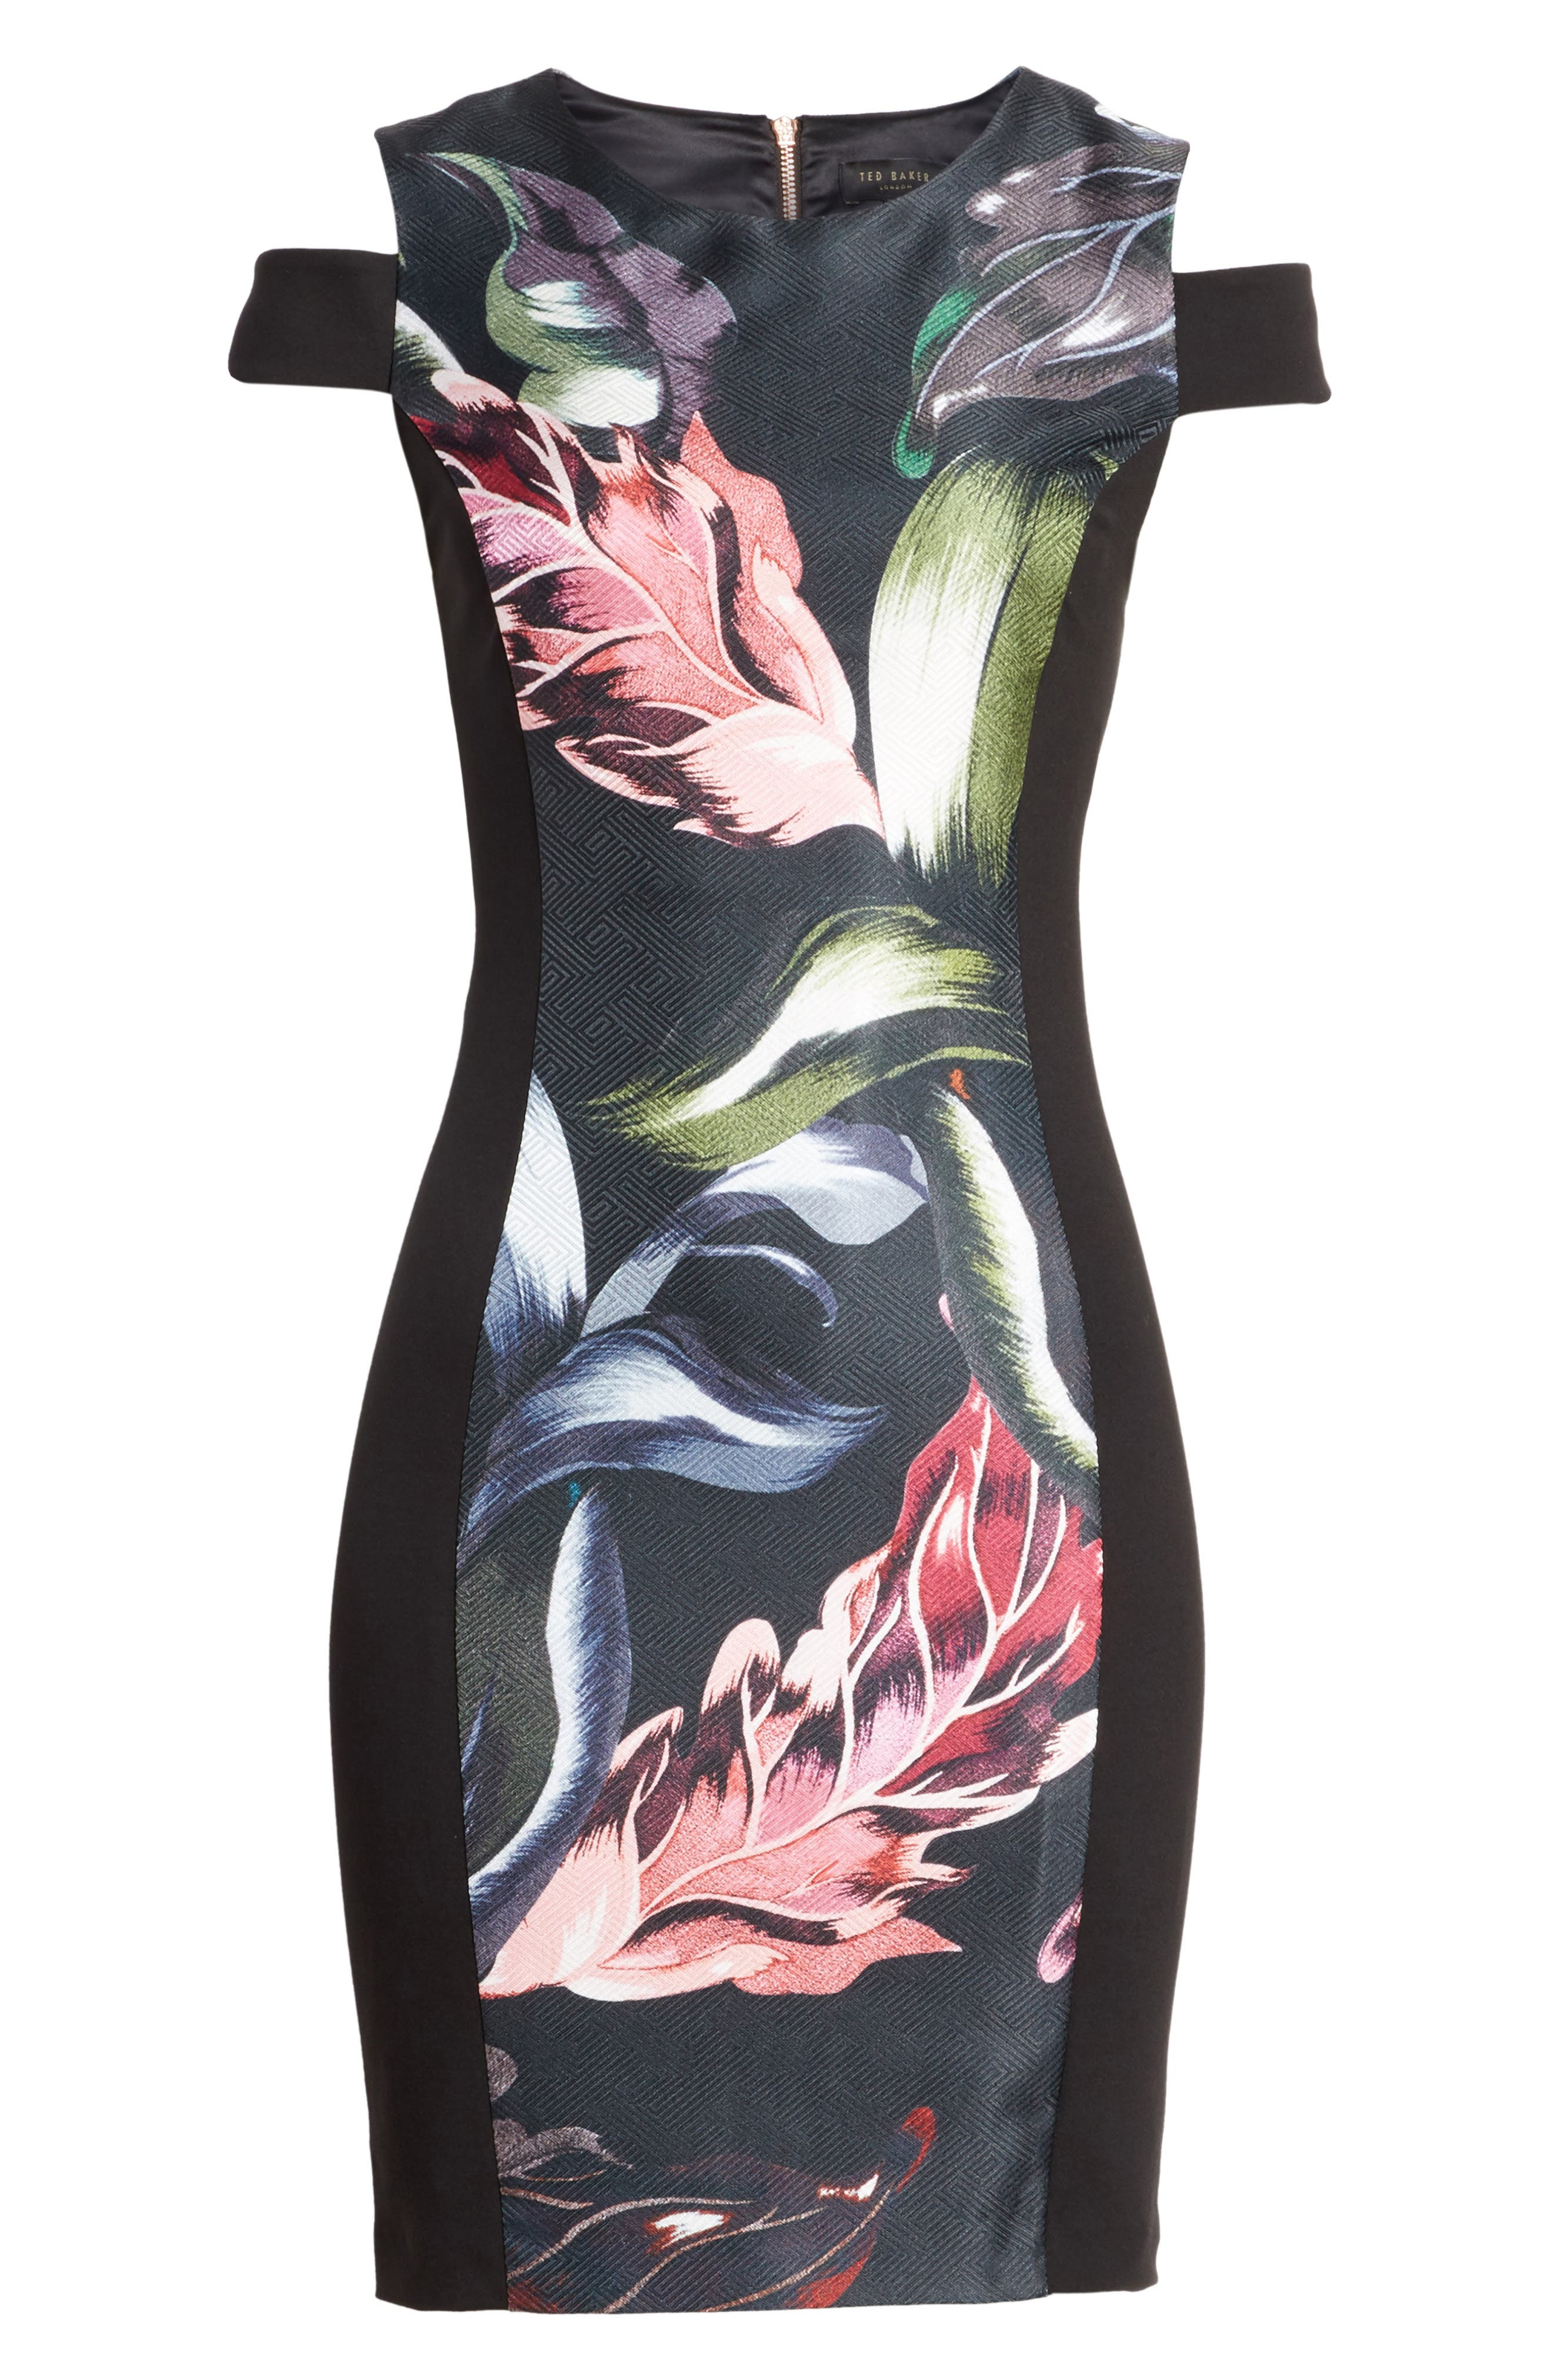 Leeash Eden Body Con Dress,                             Alternate thumbnail 6, color,                             001